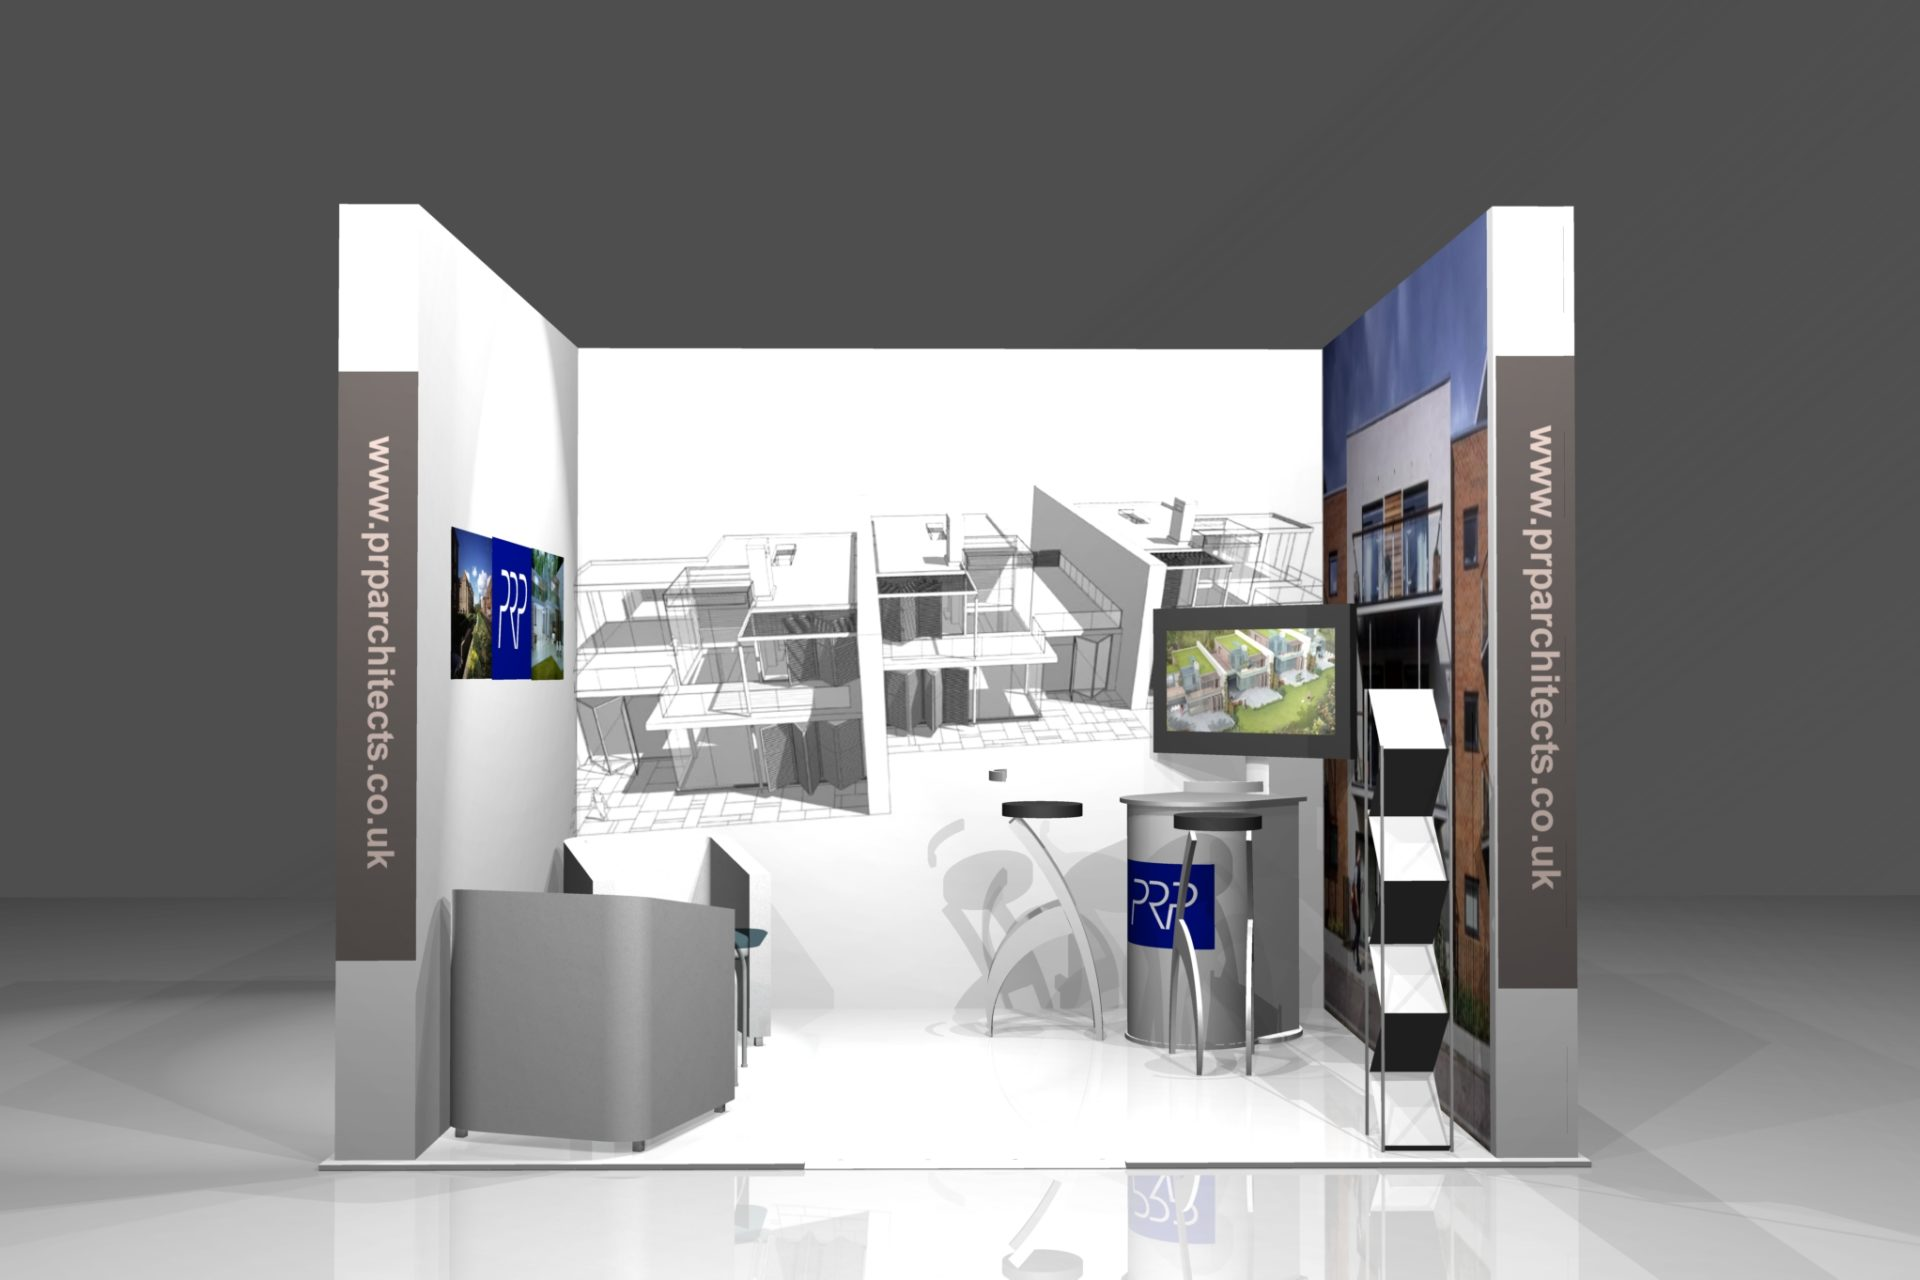 Small Modular Exhibition Stands : Stand portfolio exhibition services london modular